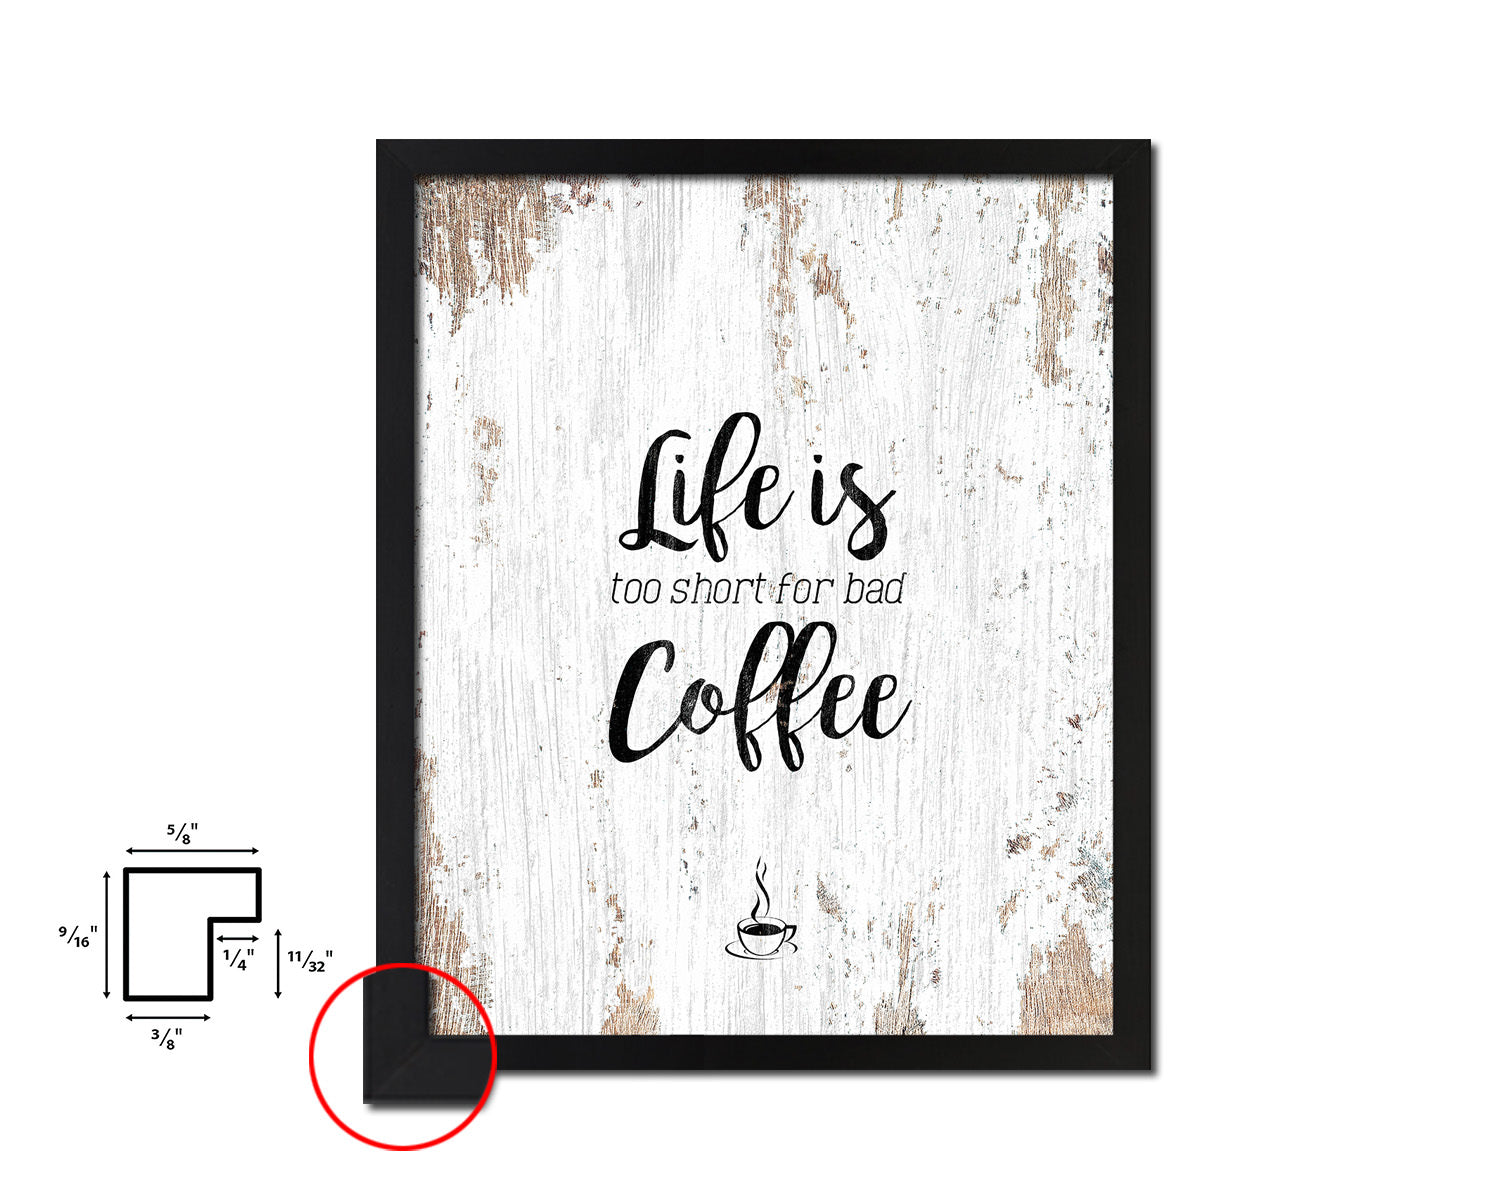 Life is what happens between coffee&wine Quote Framed Artwork Print Wall Decor Art Gifts